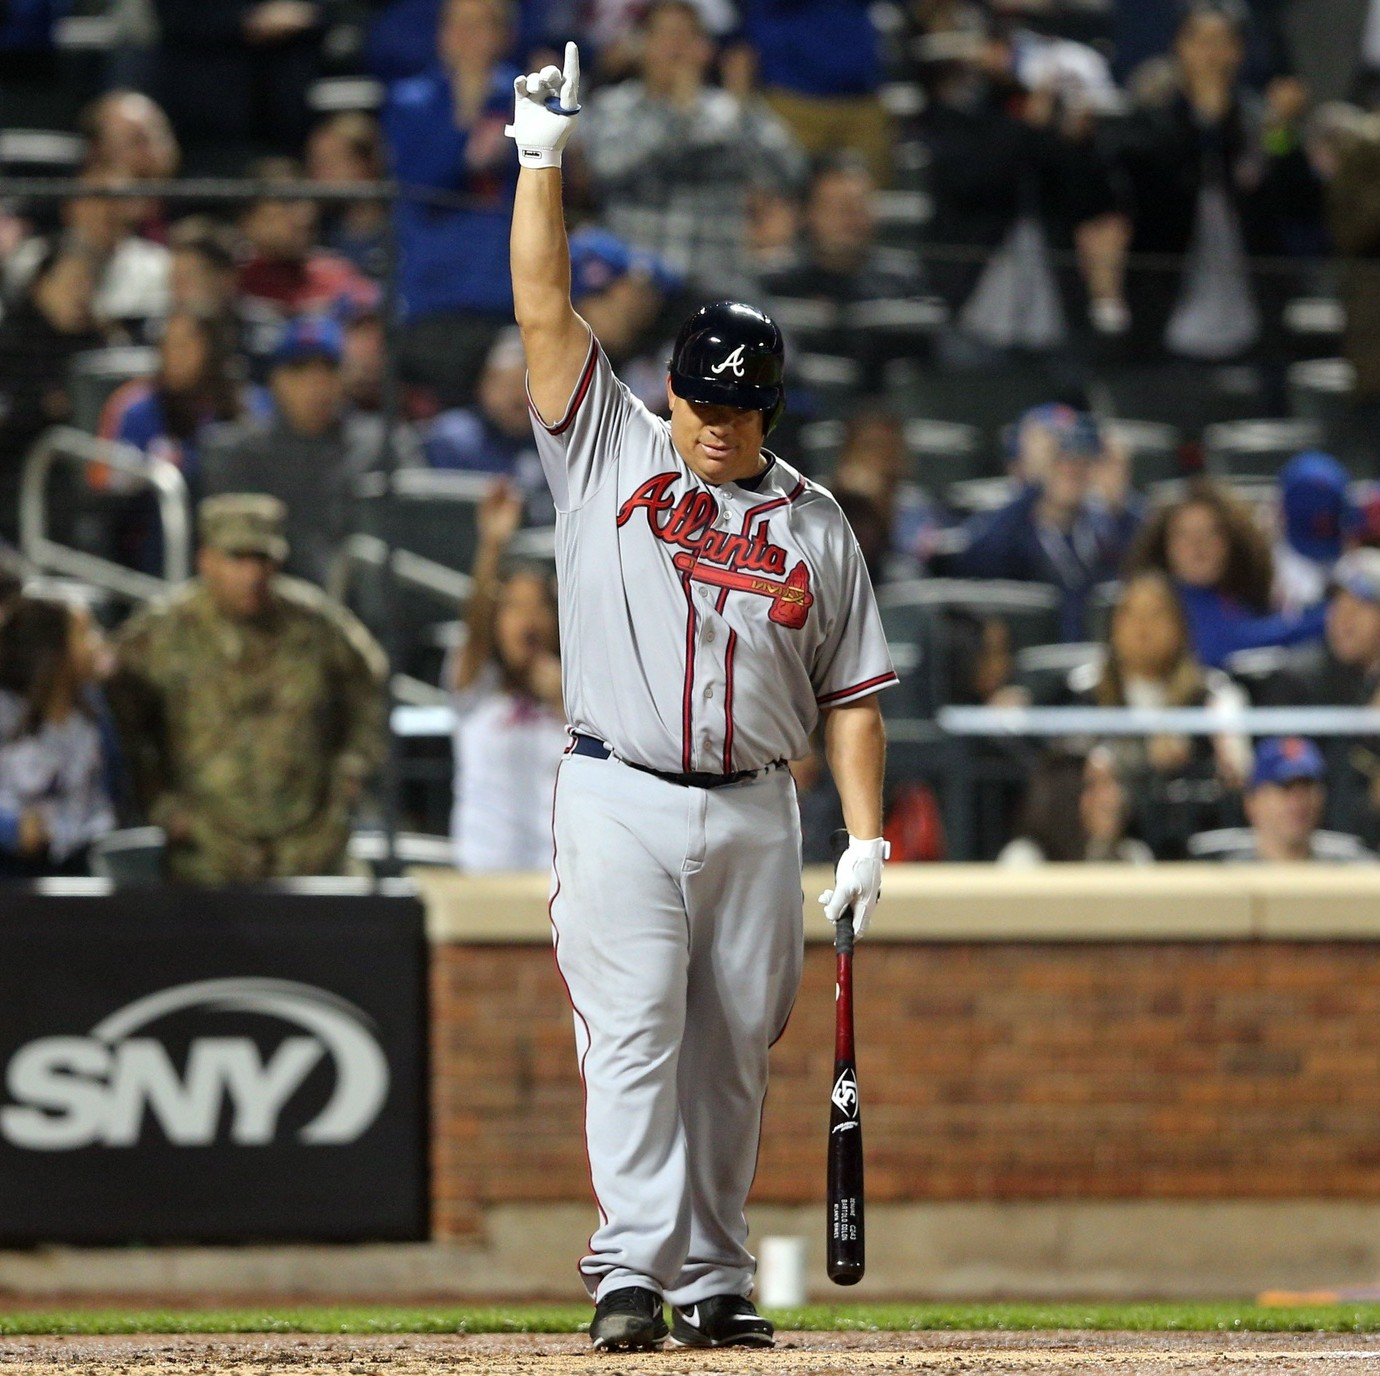 The-braves-are-young-and-old-and-rebuilding-for-the-present-1491455526.jpg?crop=0.6686159844054581xw:1xh;0